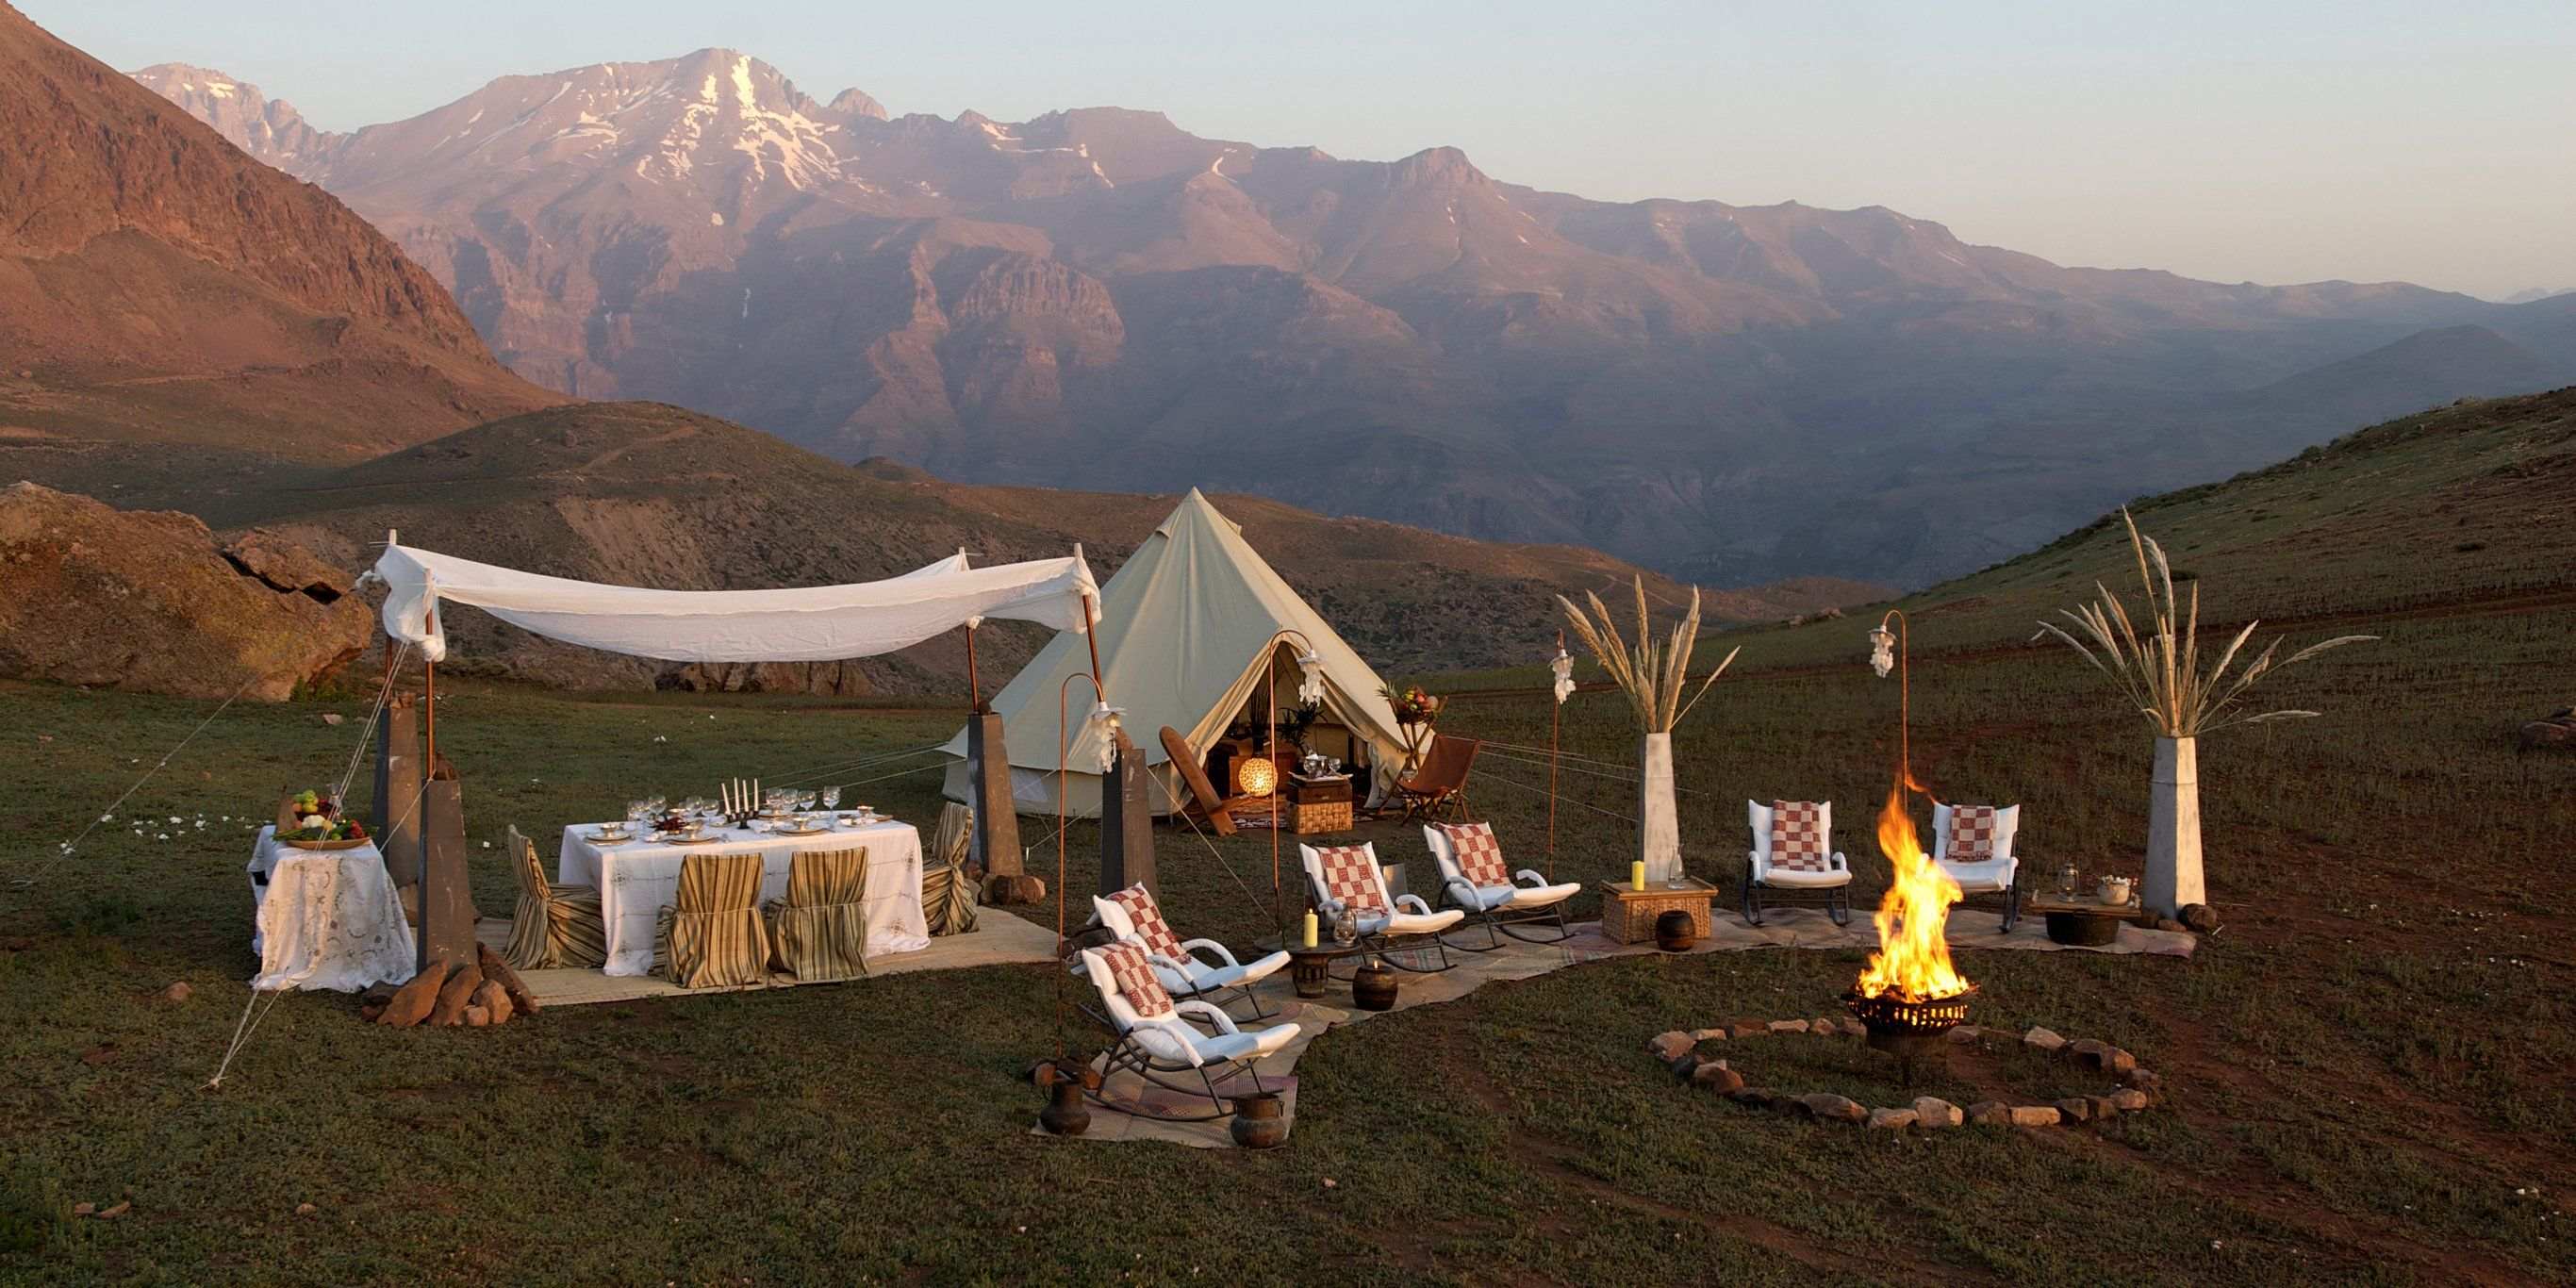 Extreme glamping Luxury yurts, covered wagons with air